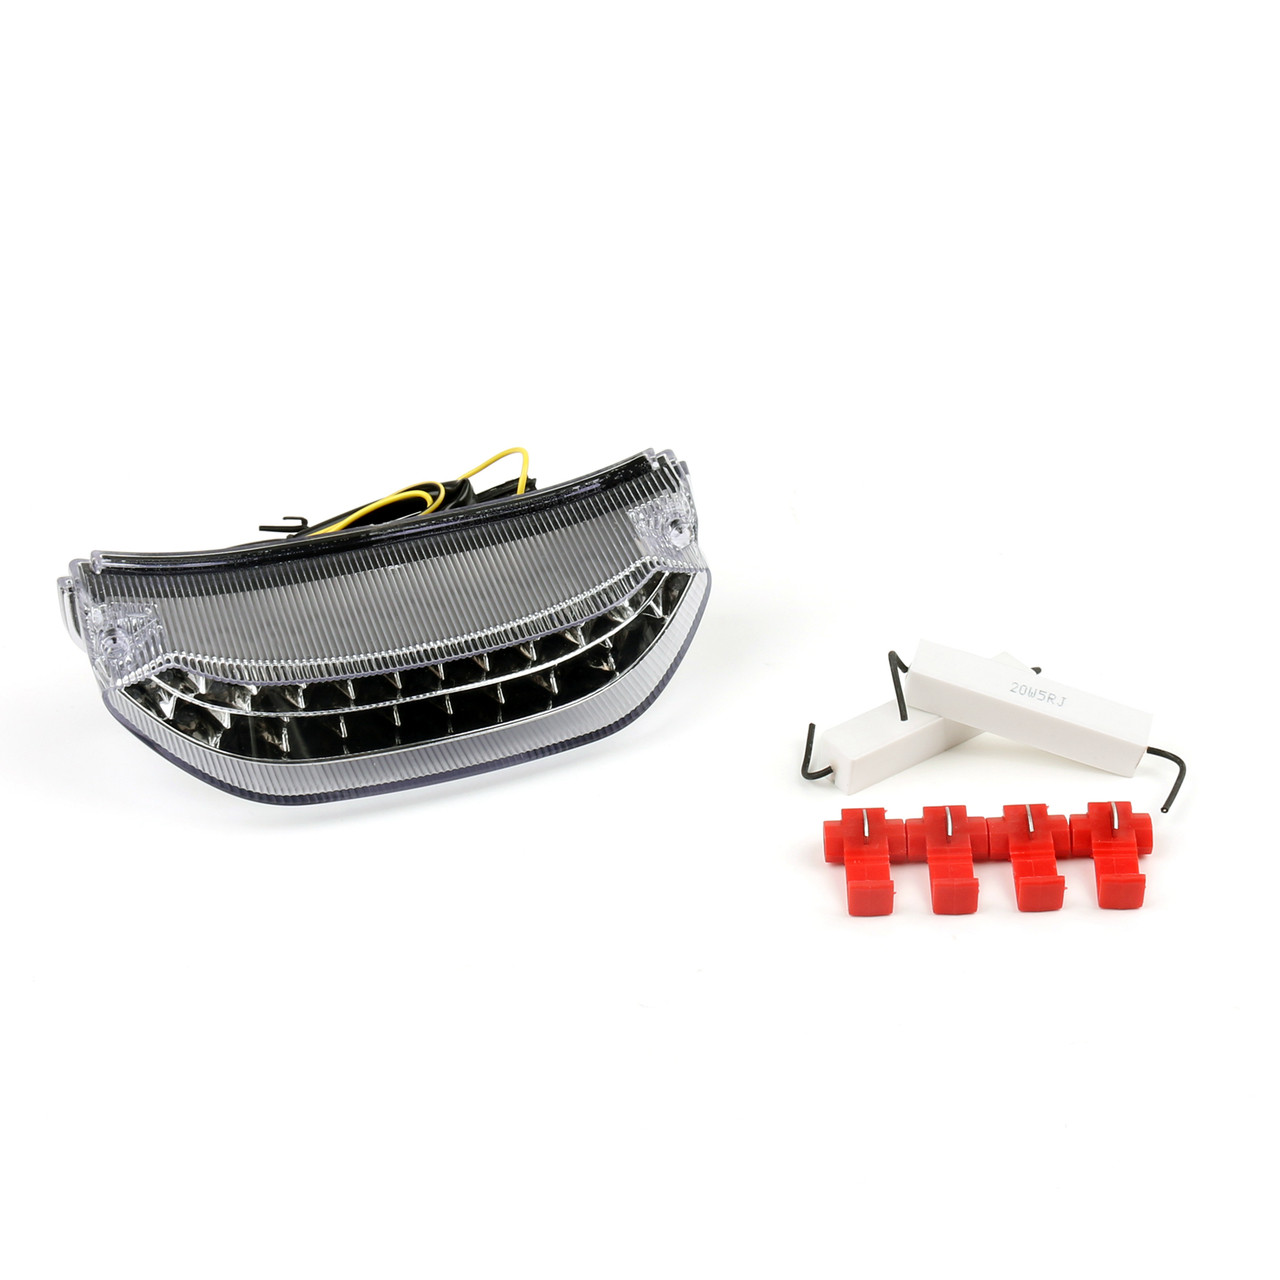 http://www.madhornets.store/AMZ/MotoPart/Taillight/TL-315/TL-315-Clear-1.jpg